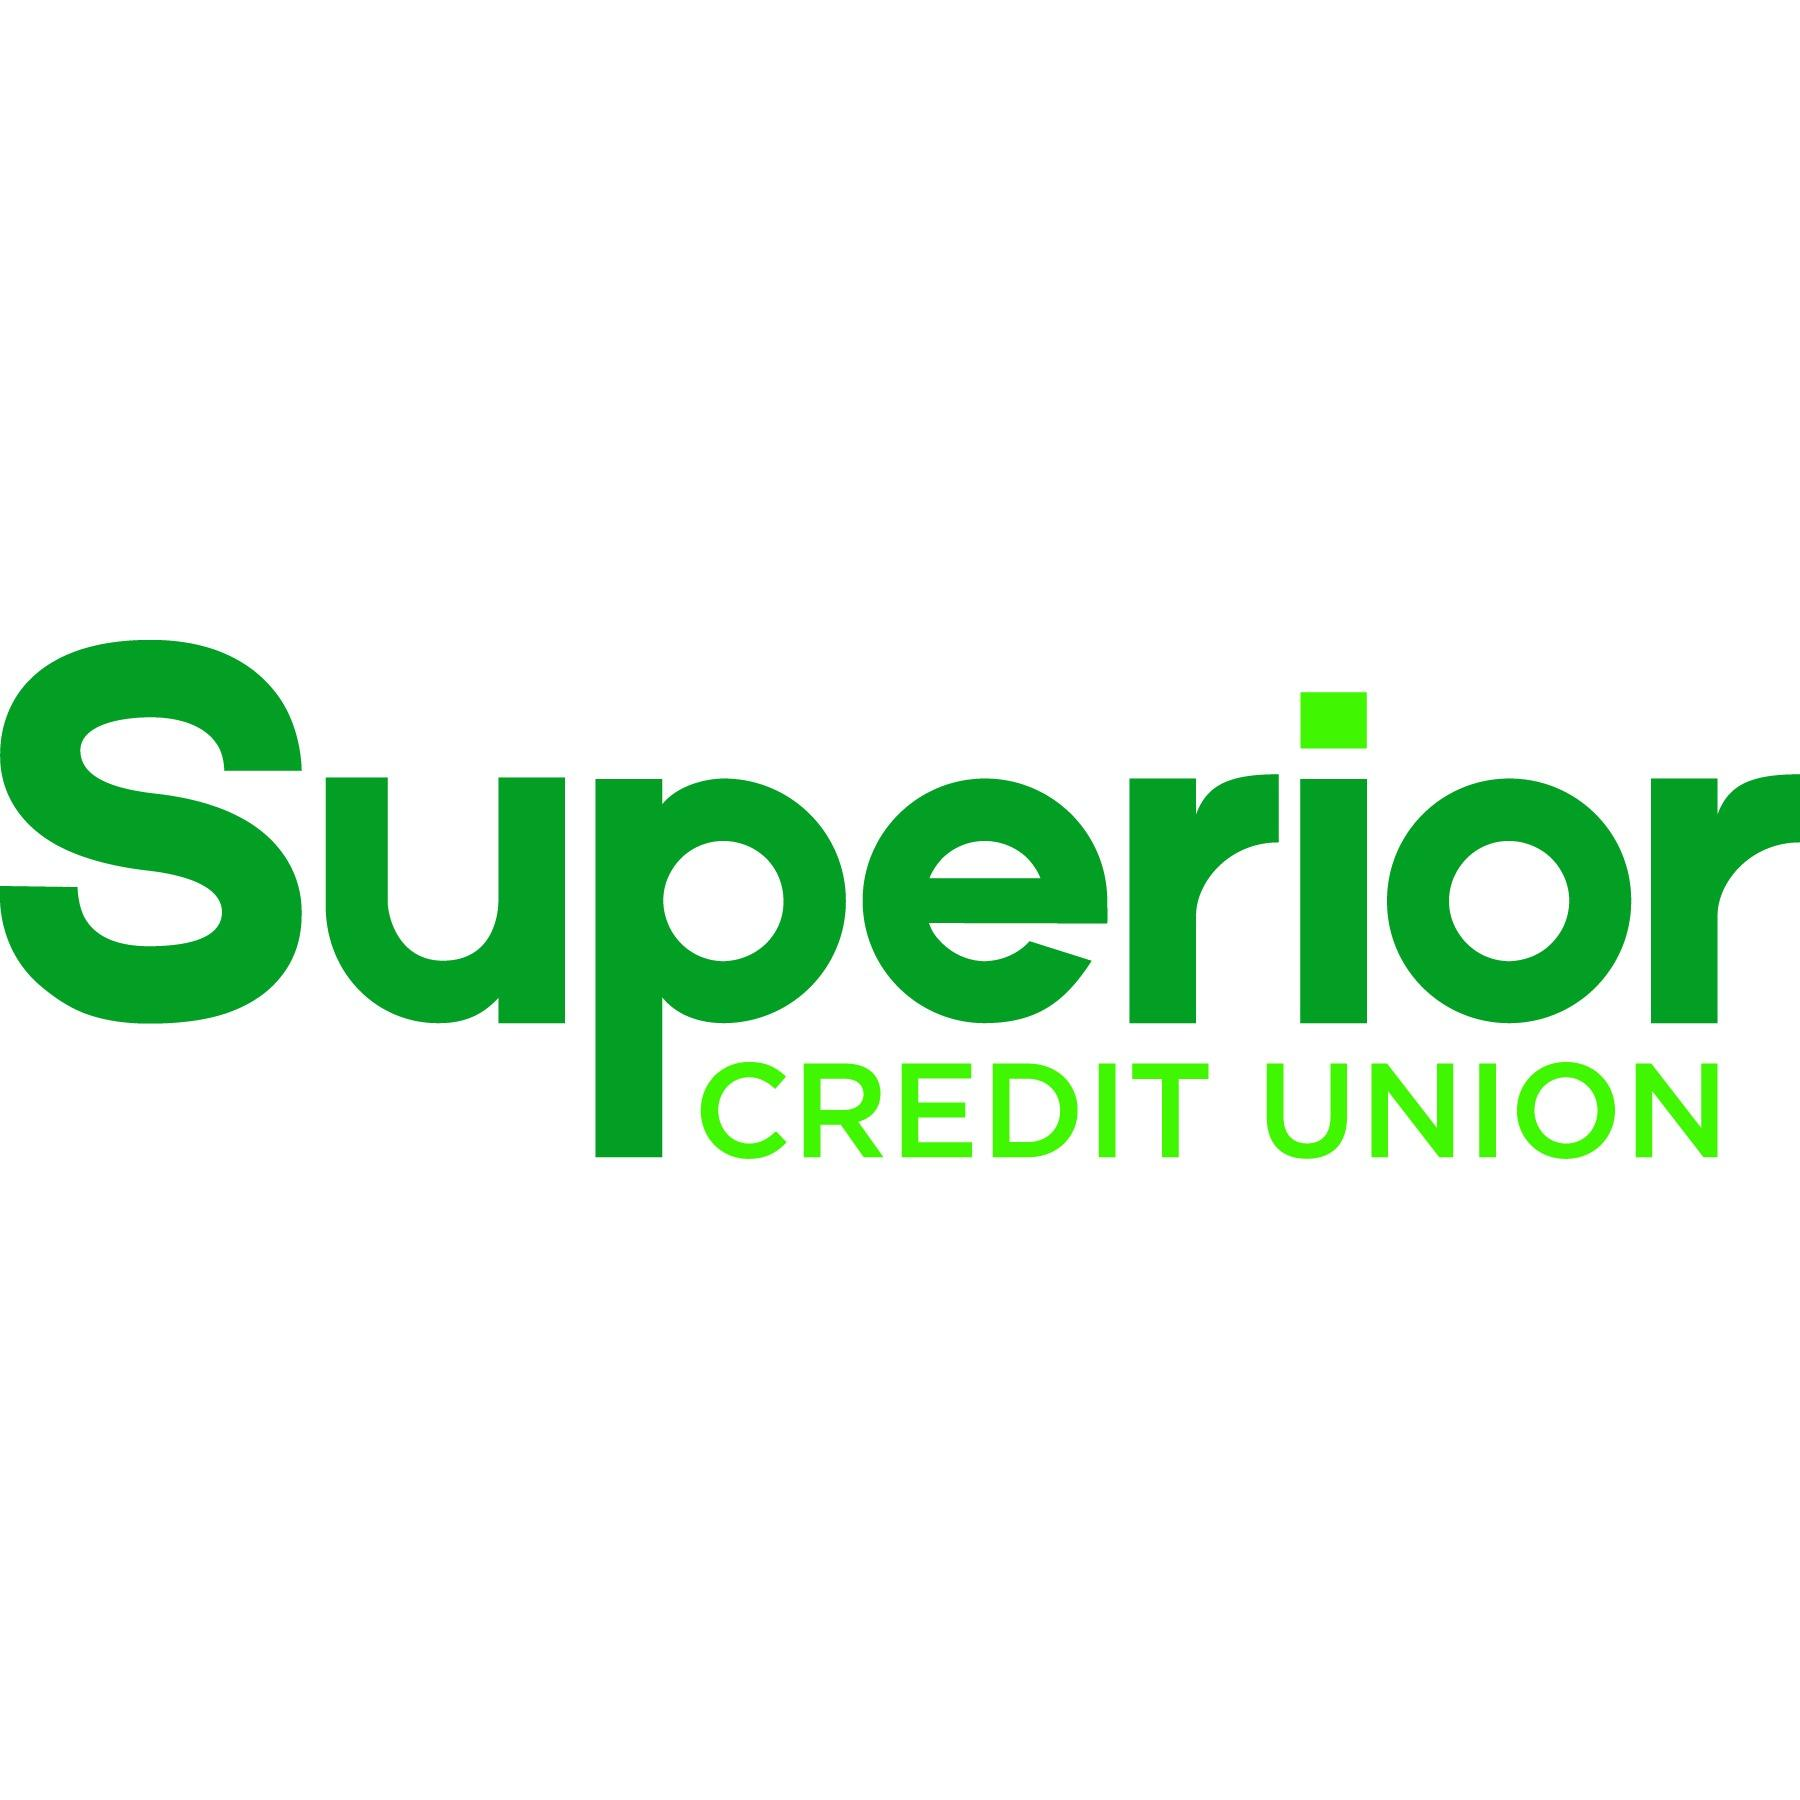 Superior Credit Union - Cincinnati, OH 45219 - (513)281-9988 | ShowMeLocal.com